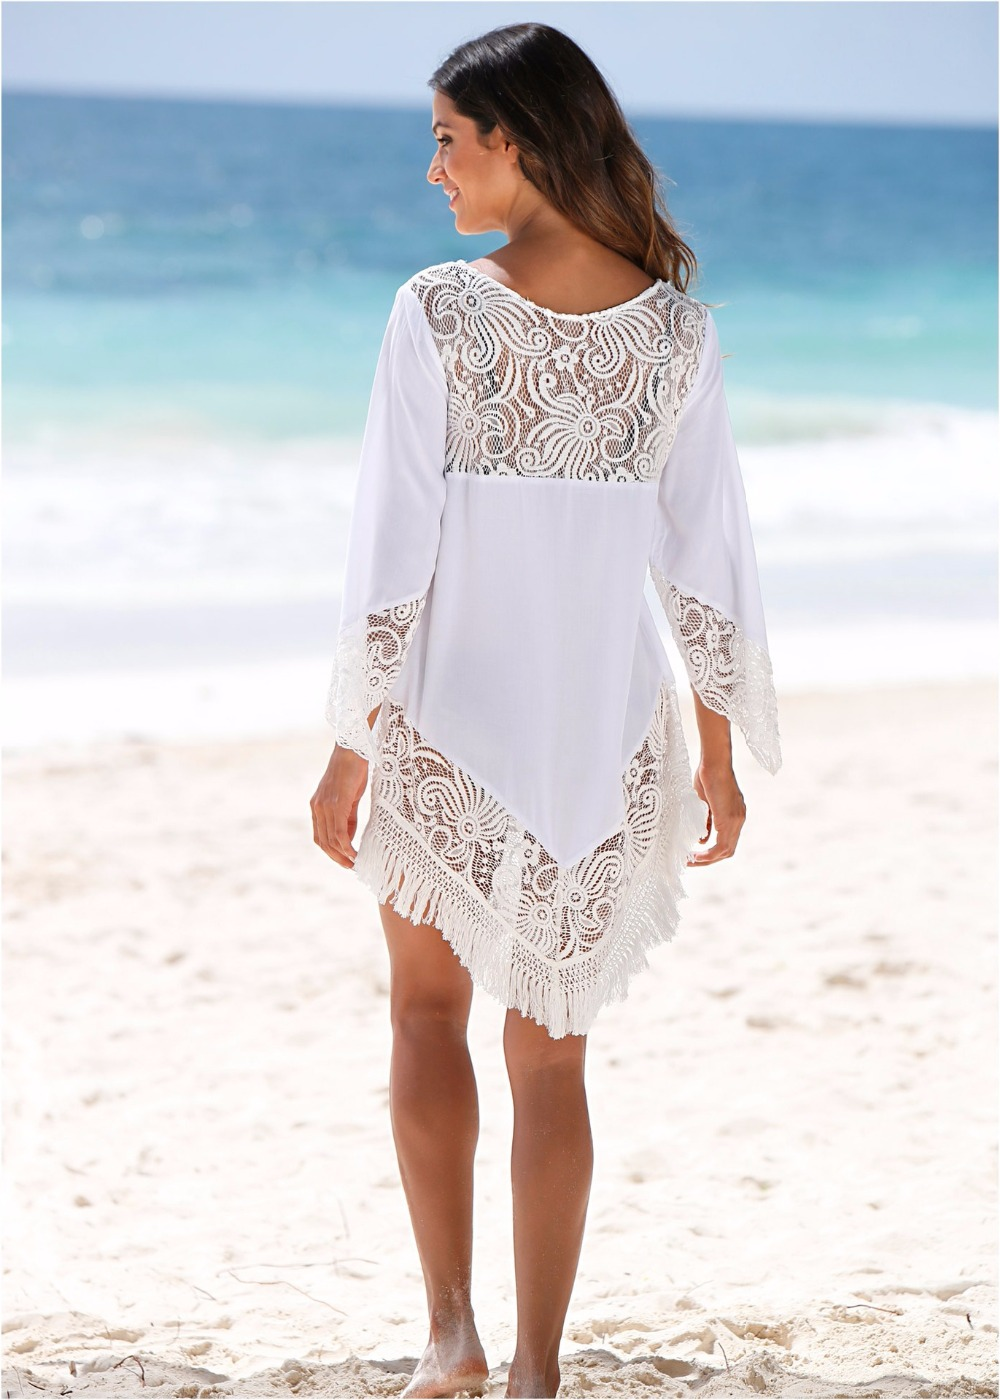 women beach dress tassel lace patchwork knee length shirt